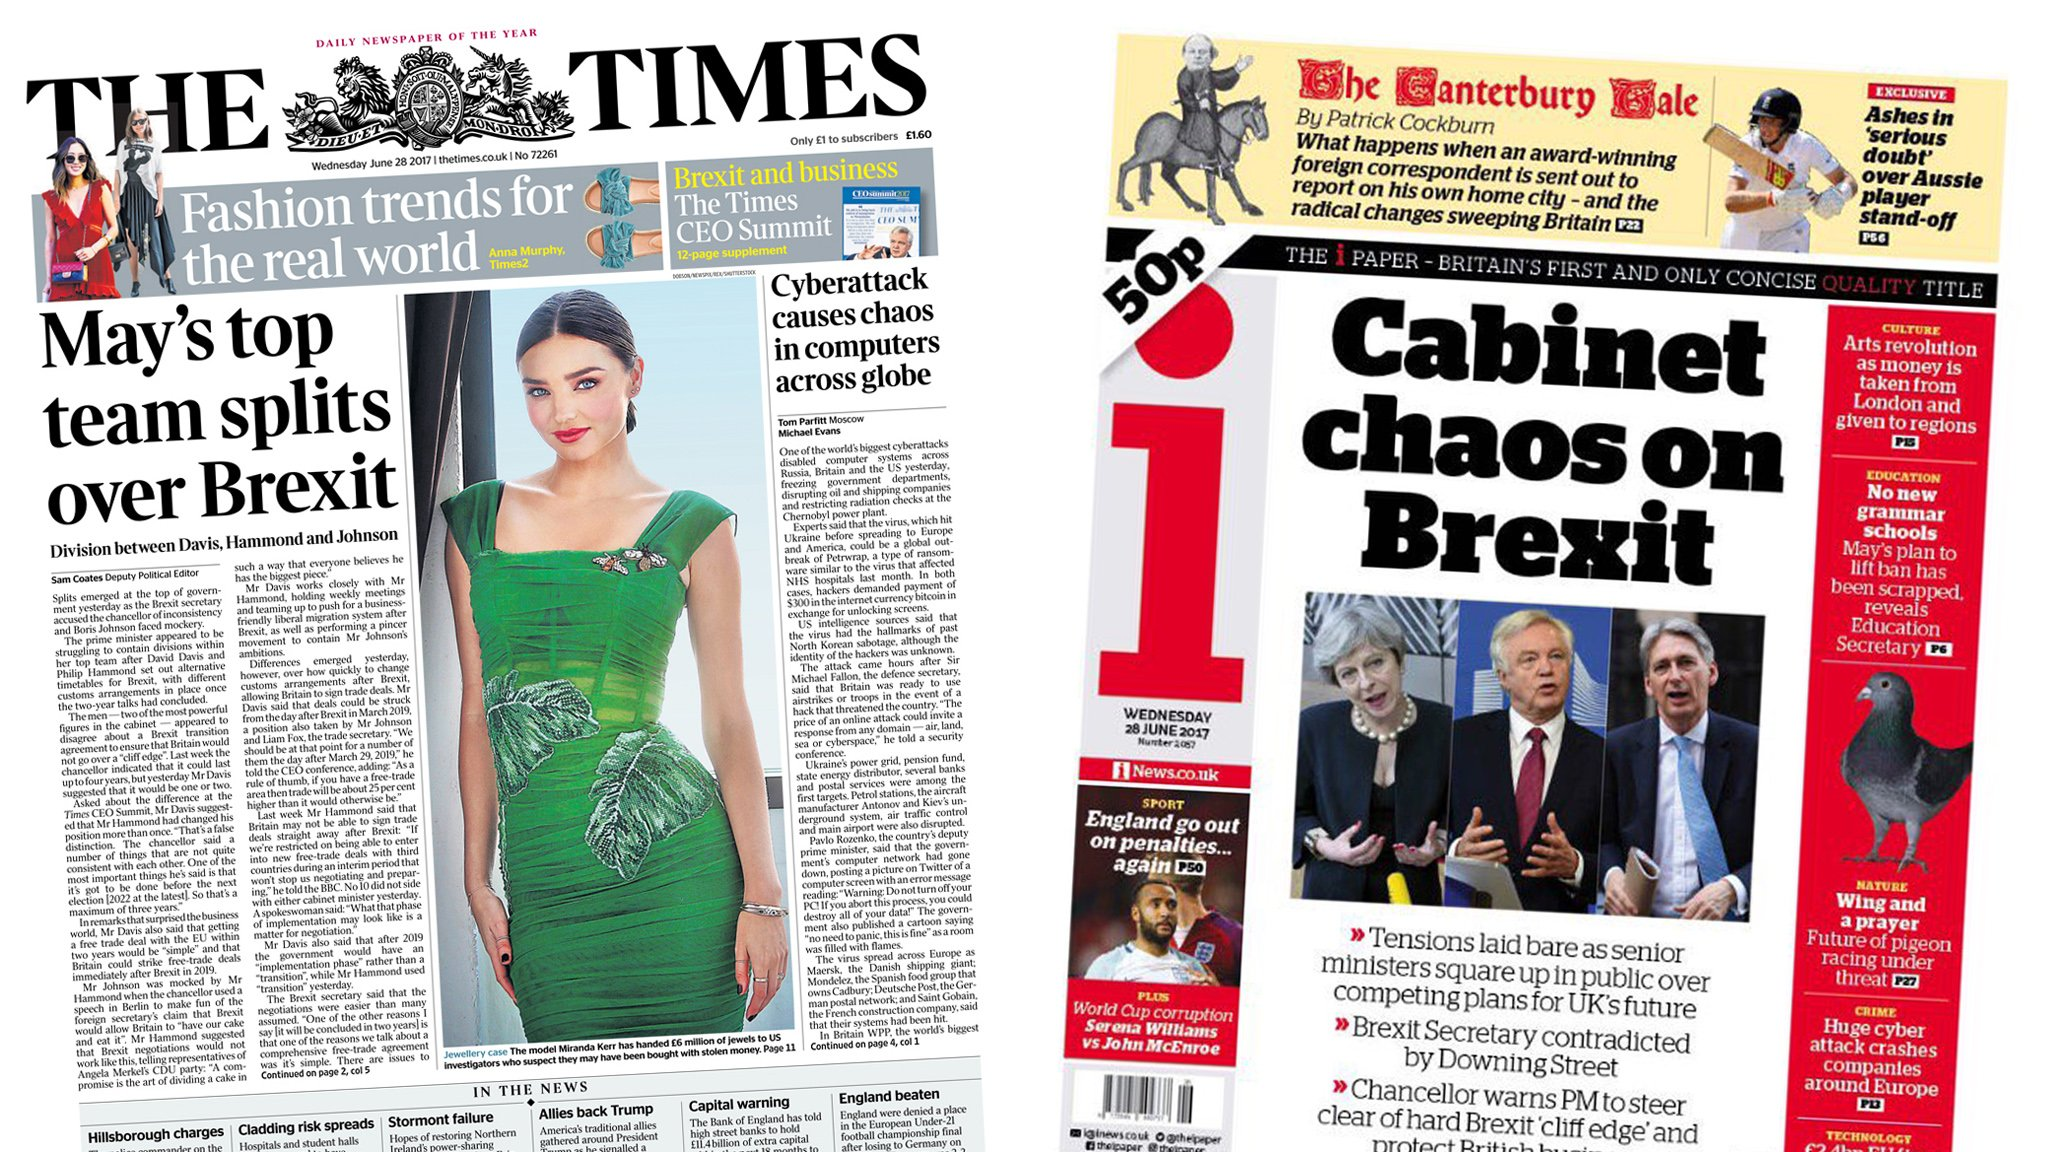 The Papers: 'May's top team split over Brexit'